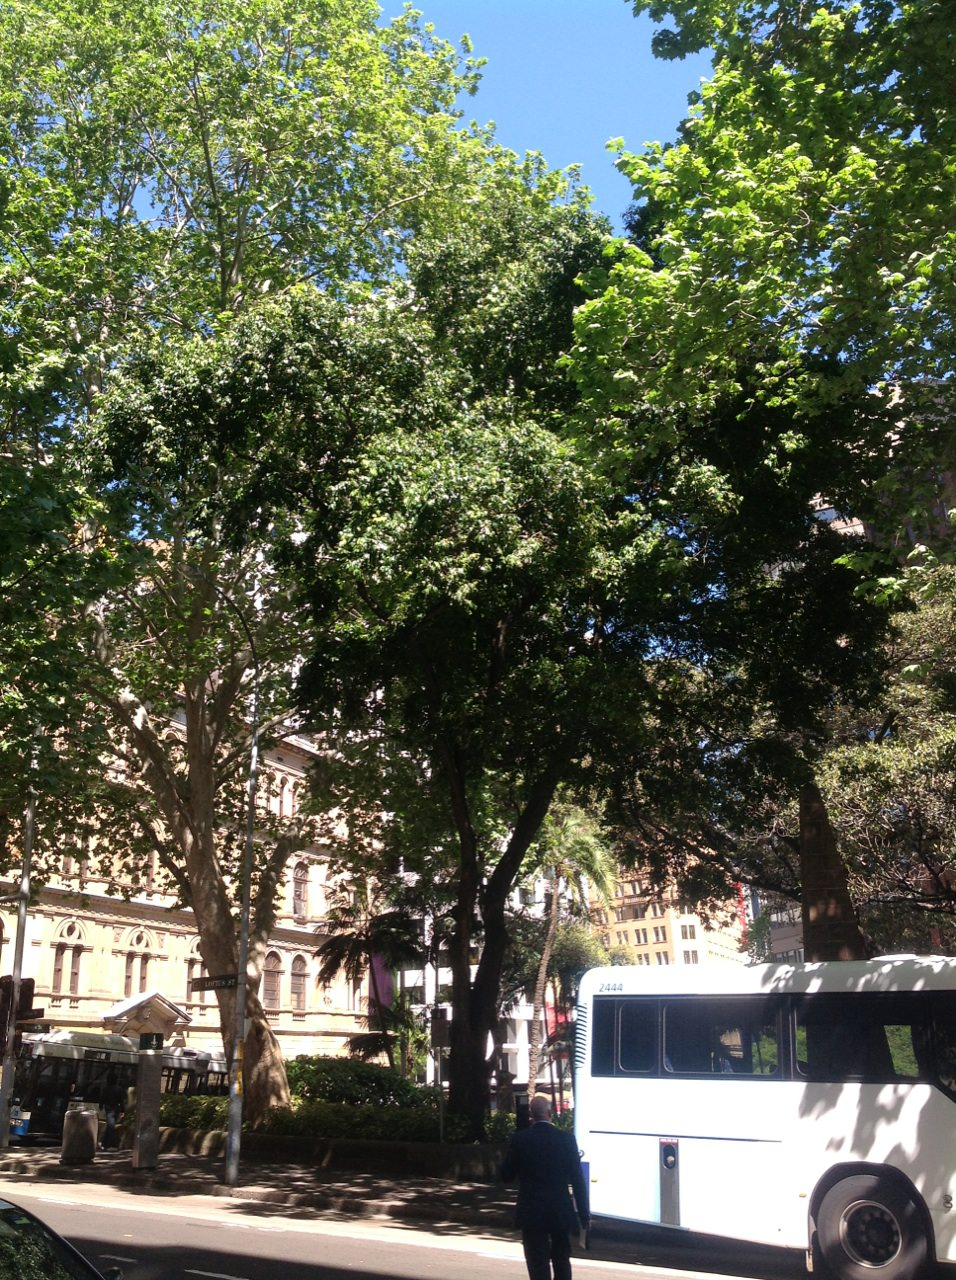 London Plane and Moreton Bay Figs